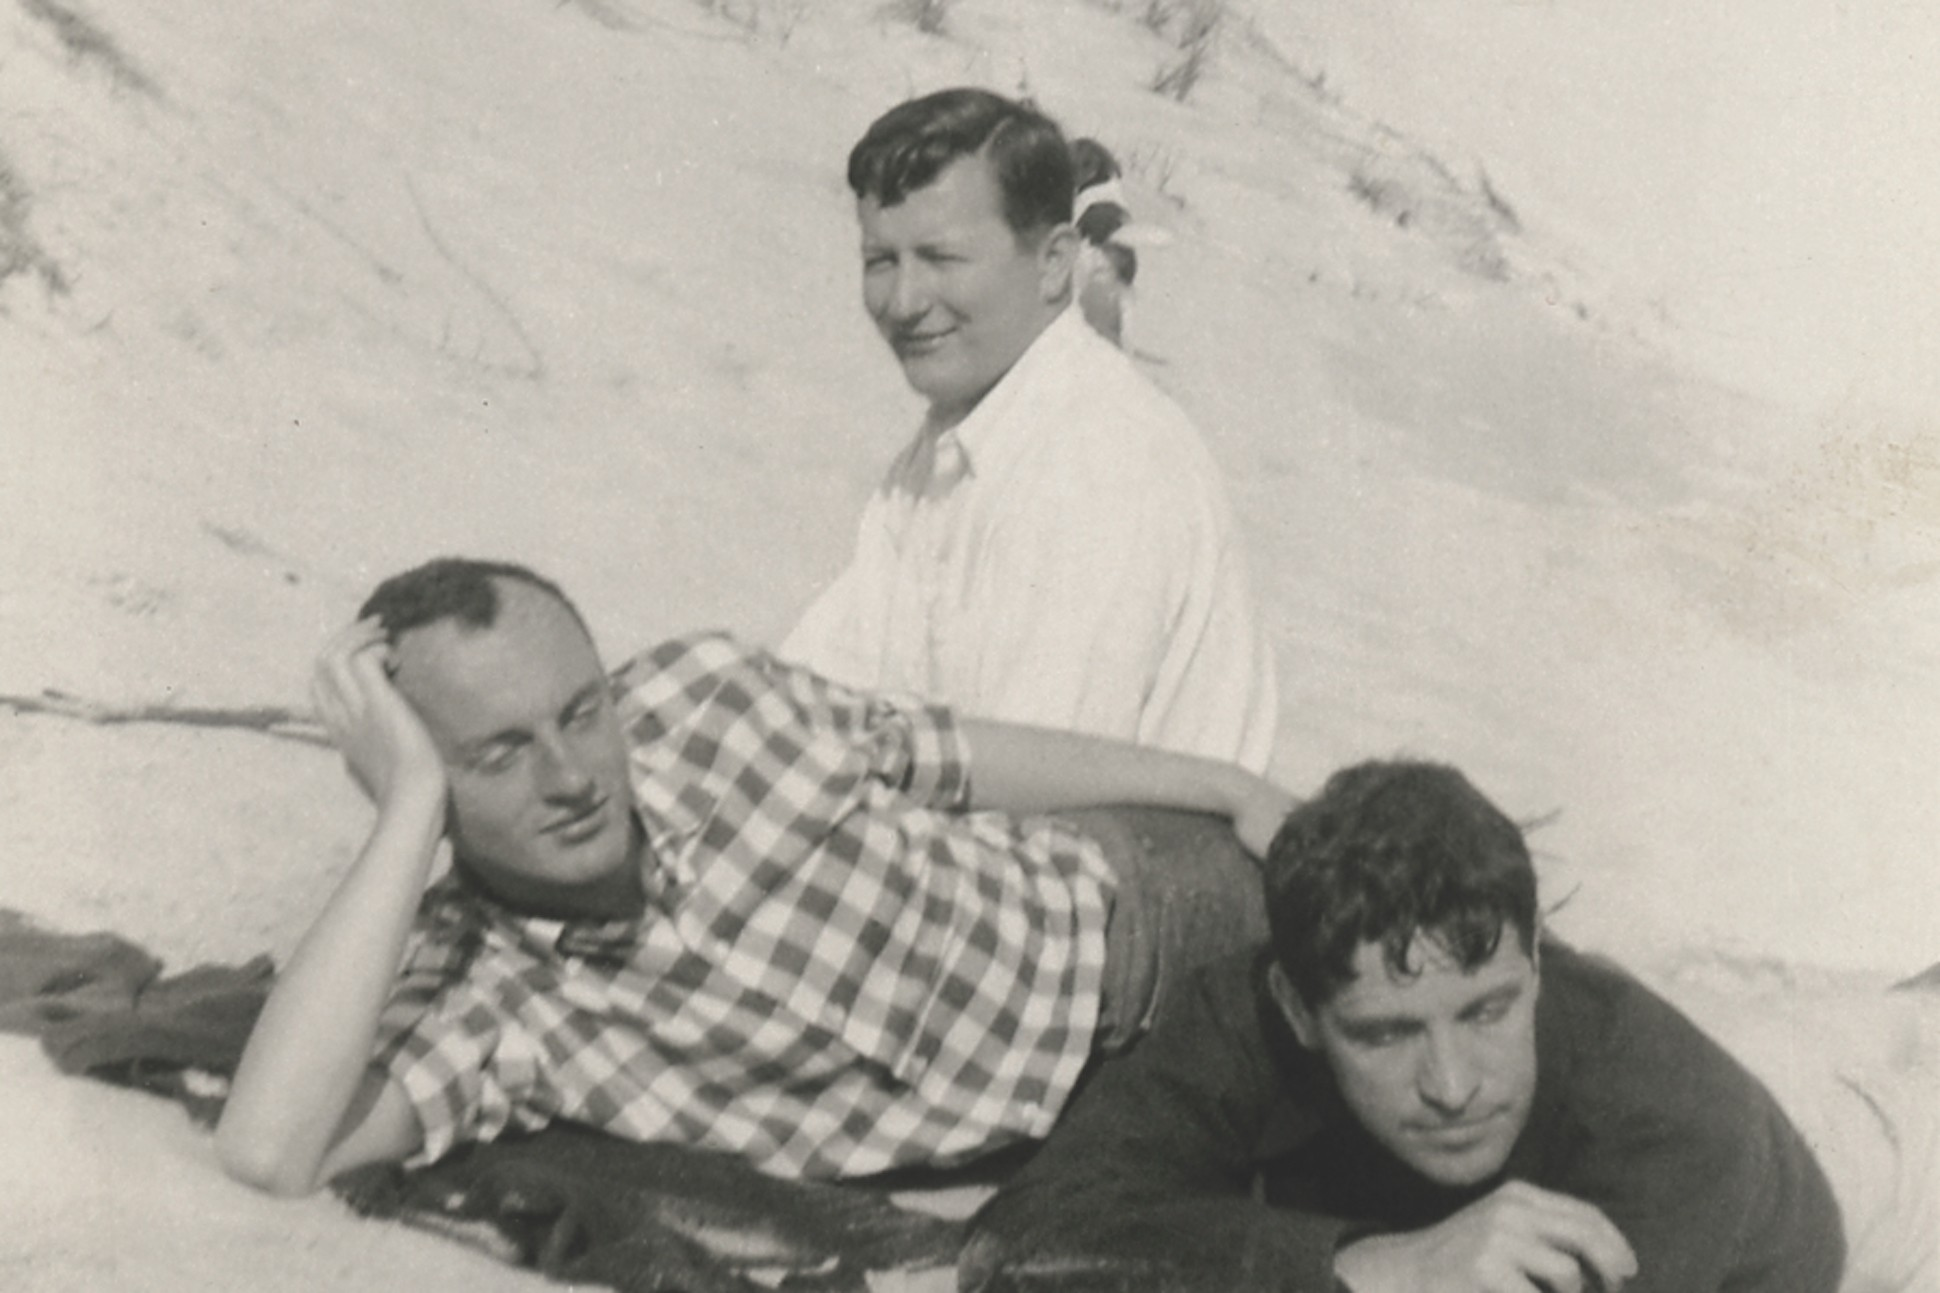 Black and white photo of Frank O'Hara, Hal Fondren, and Fairfield Porter on the beach in 1954.